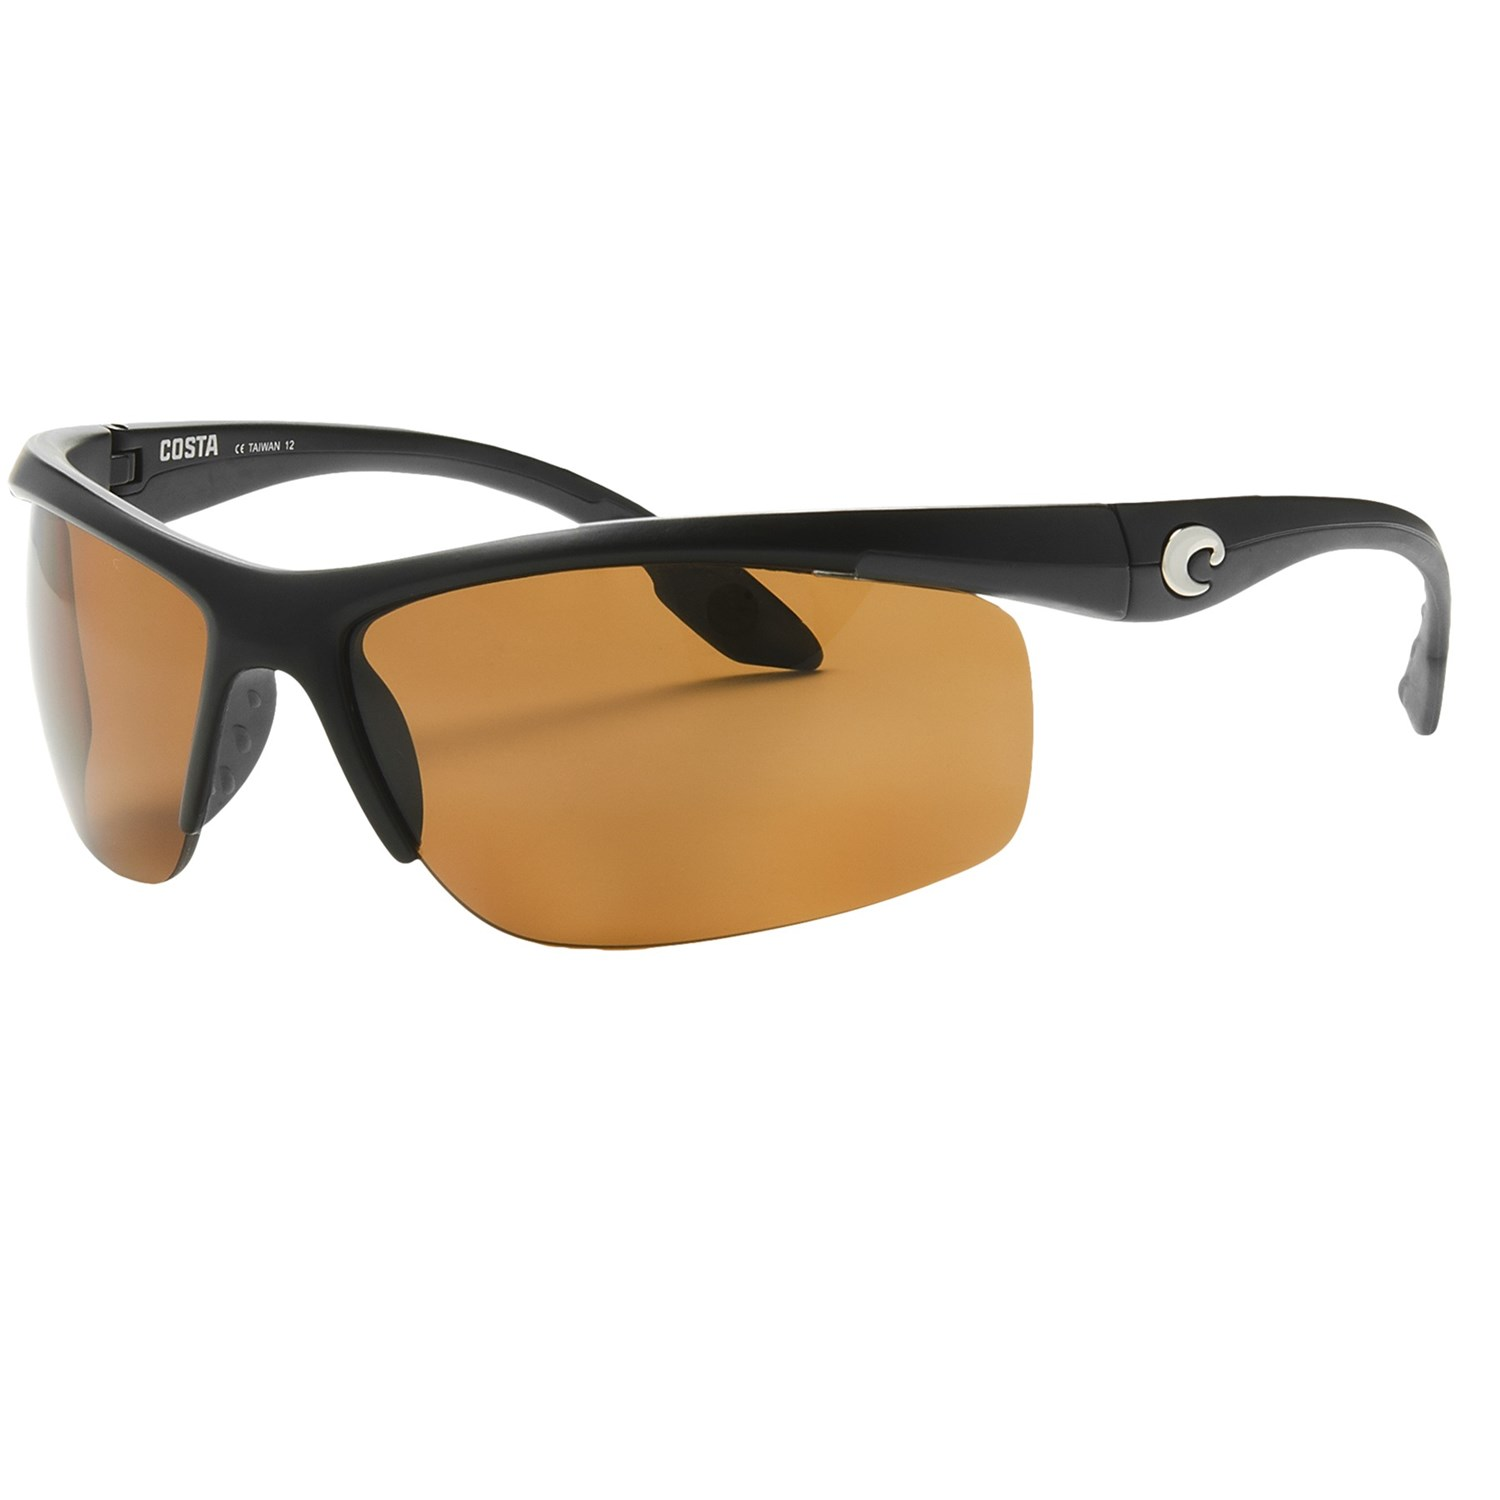 costa-del-mar-skimmer-sunglasses-polarized-580p-lenses-in-black-amber-580p~p~706